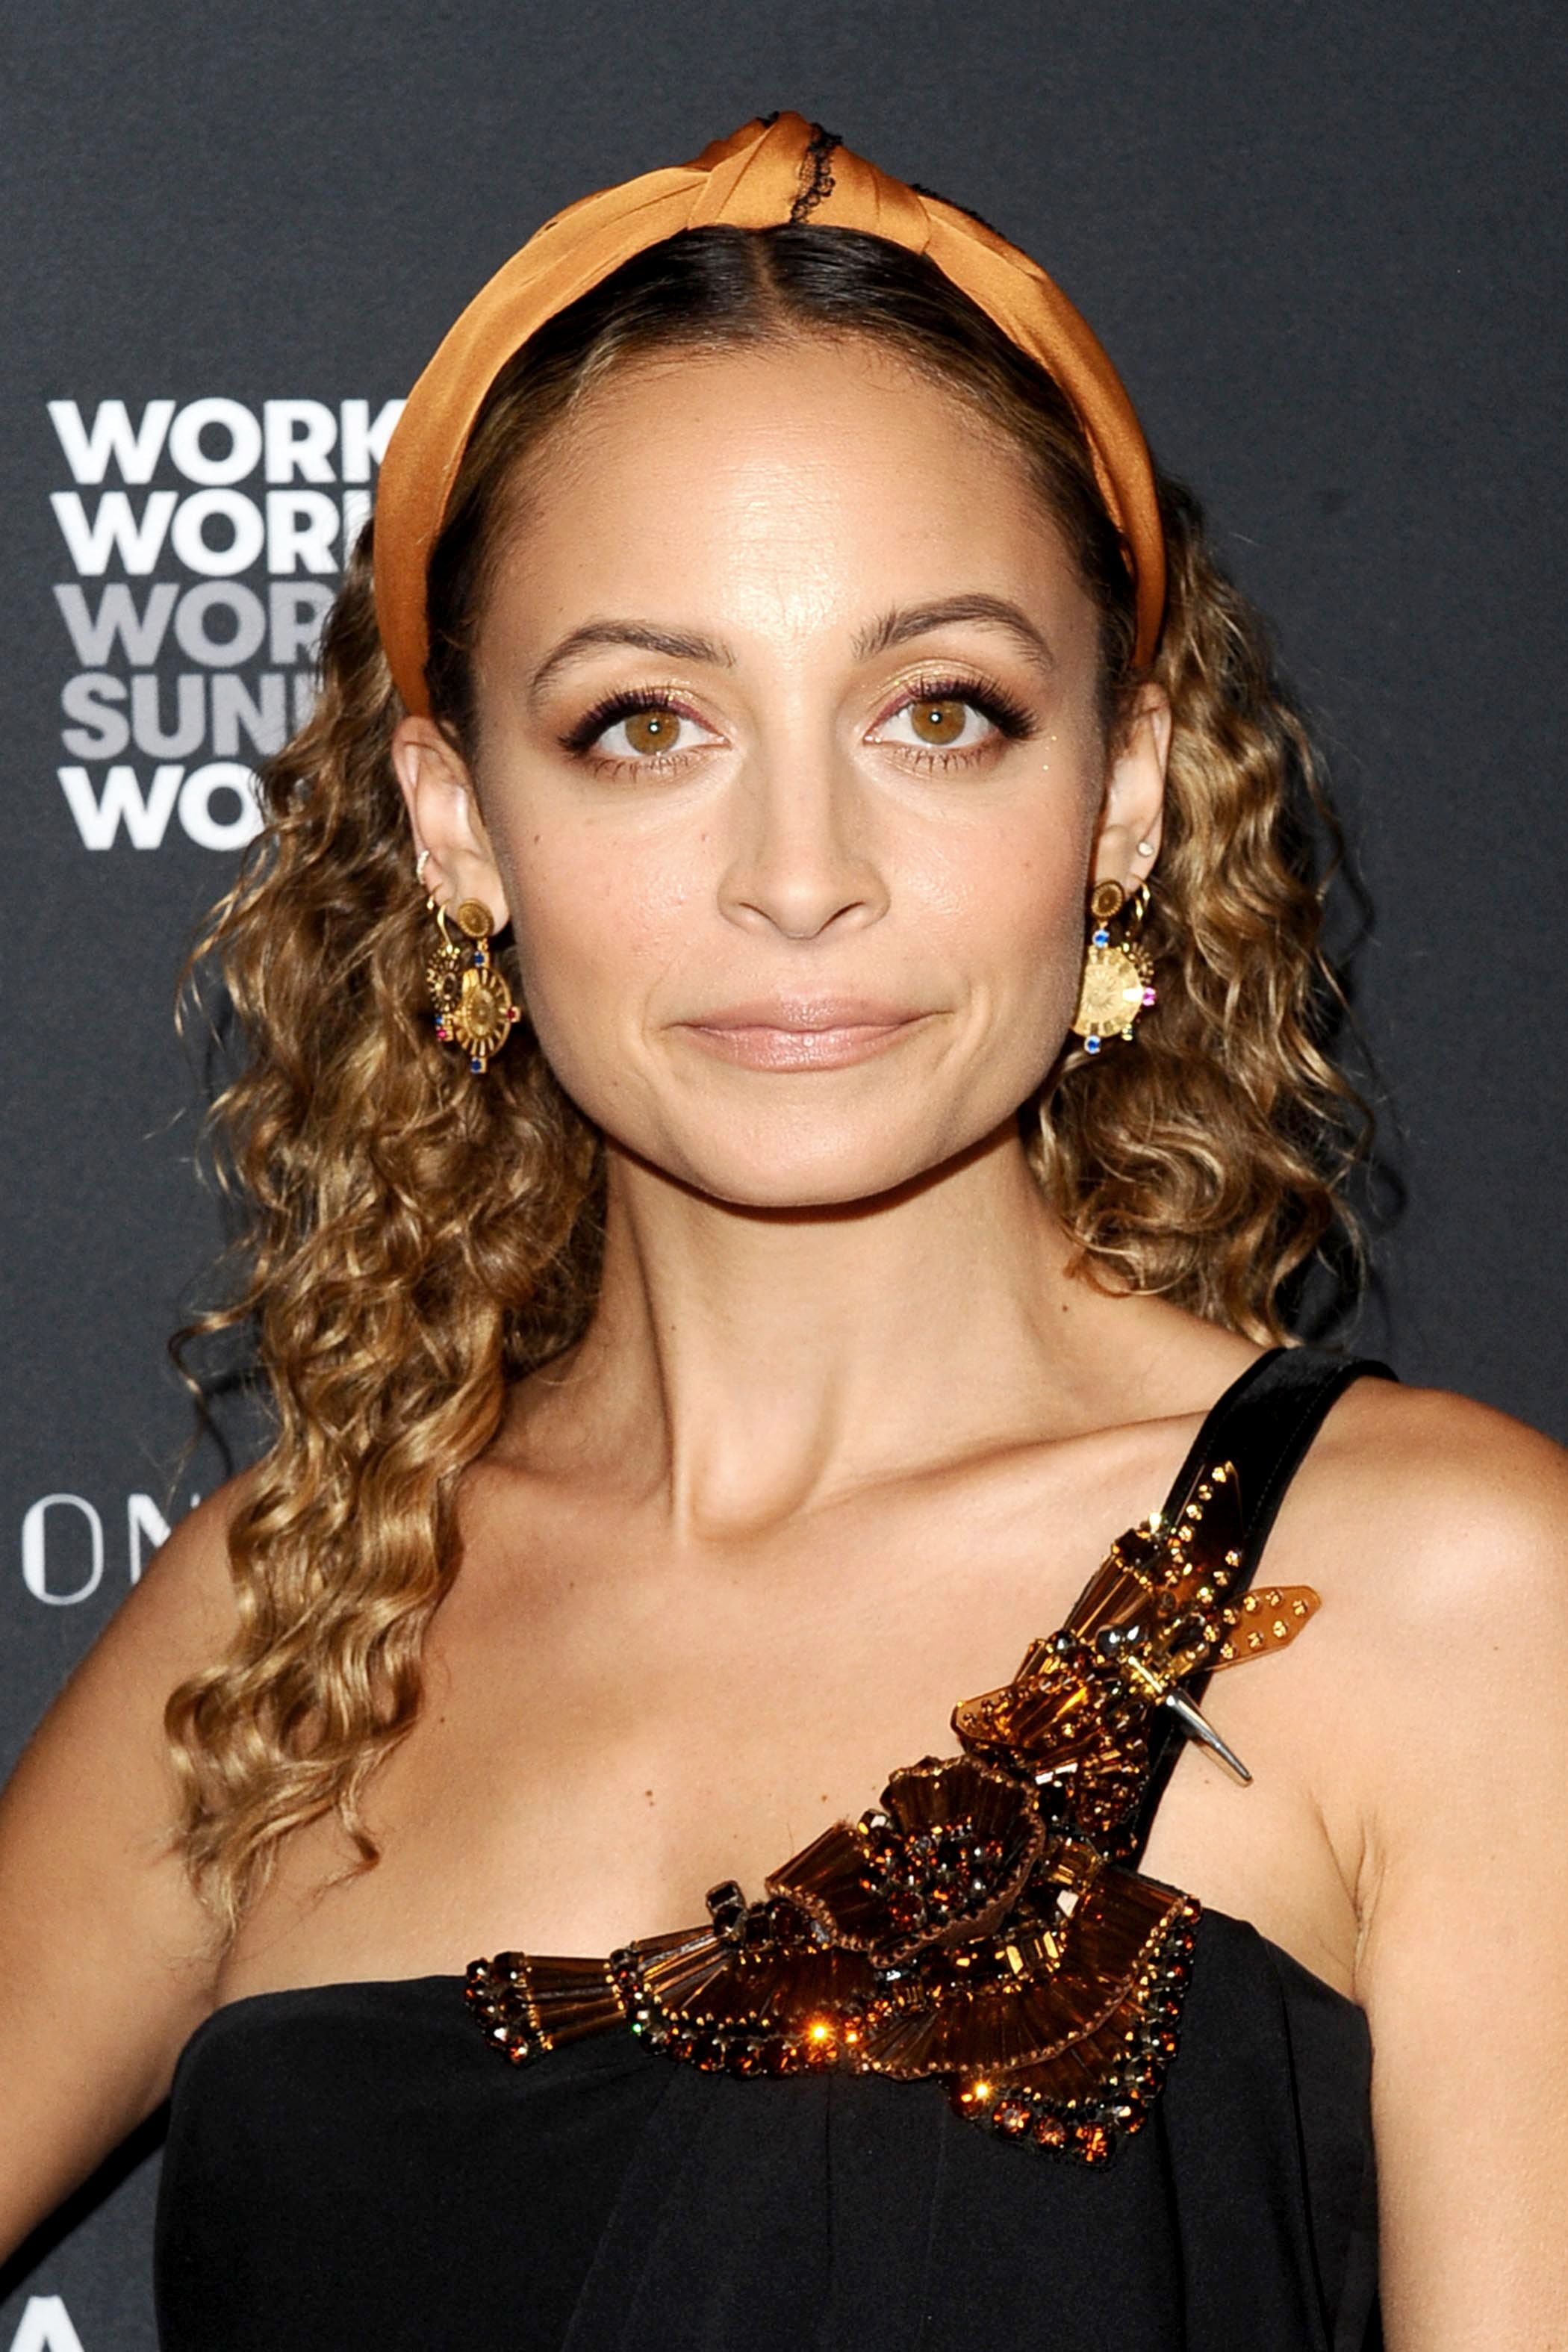 Headband and bandana hairstyles: Nicole Ritchie with golden brown curly medium length hair wearing a orange knotted headband.